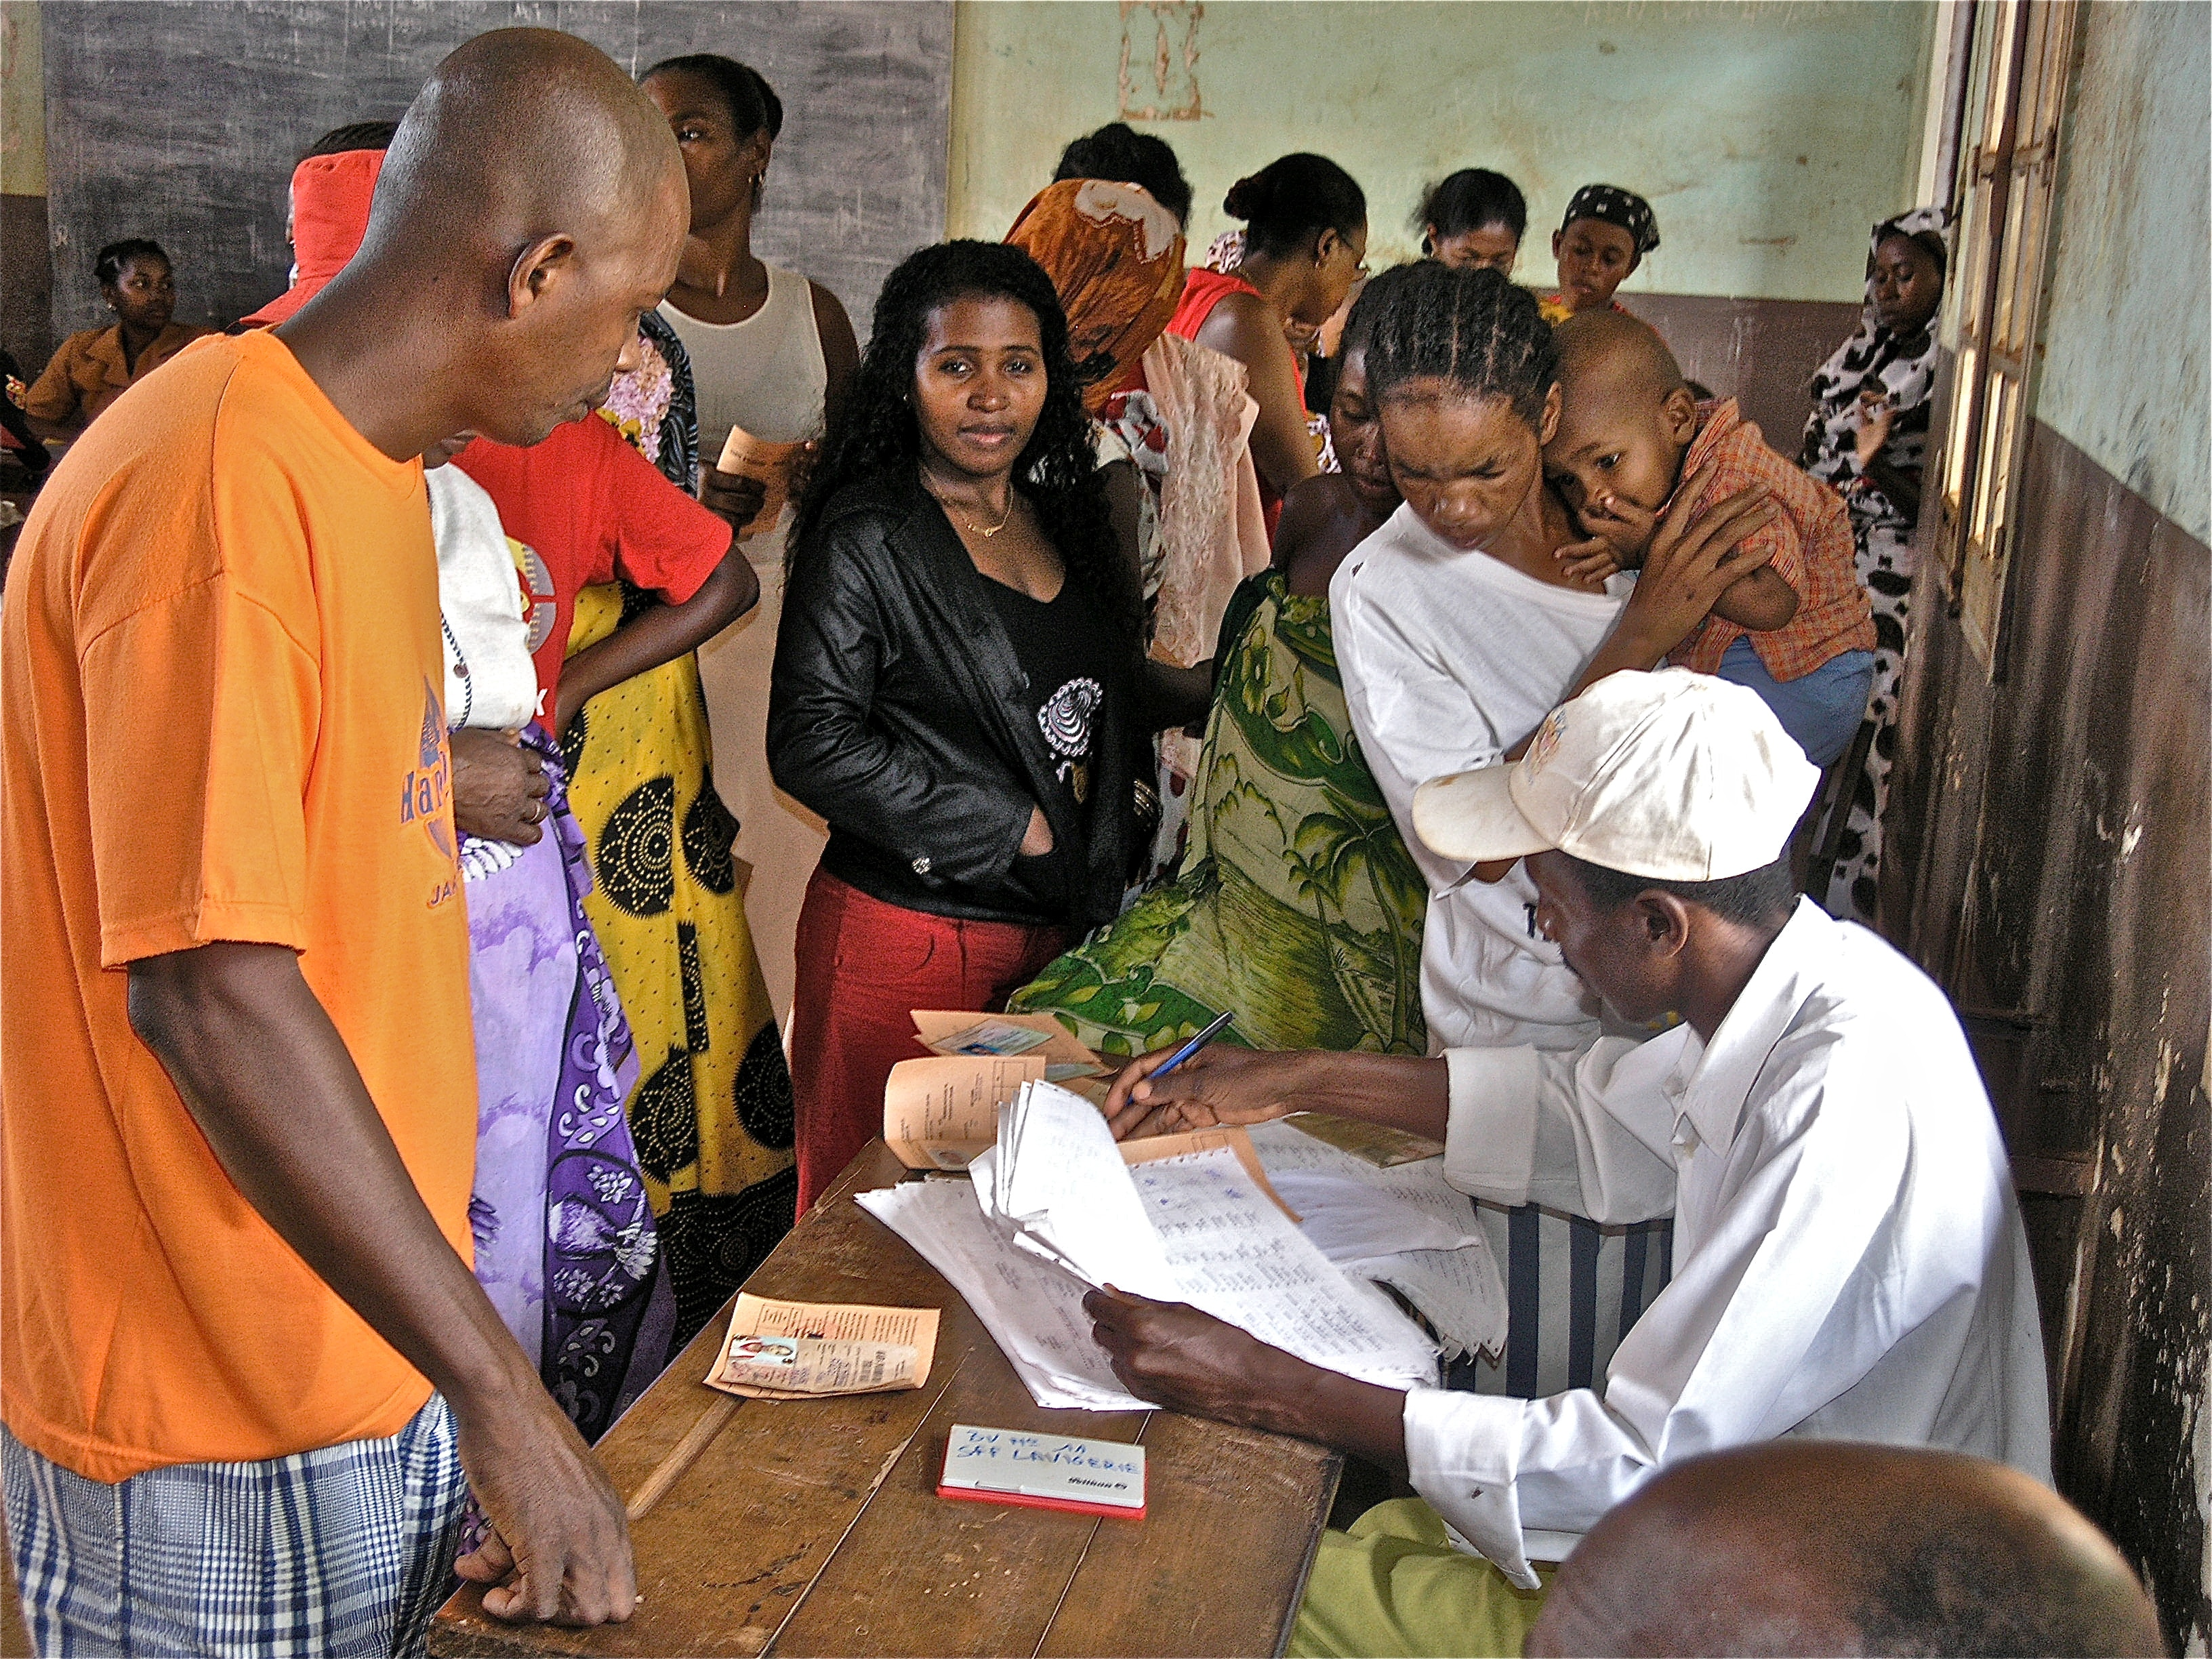 Officials check the electoral roll to see whether a voter is entitled to participate in the 2006 presidential elections in Madagascar.